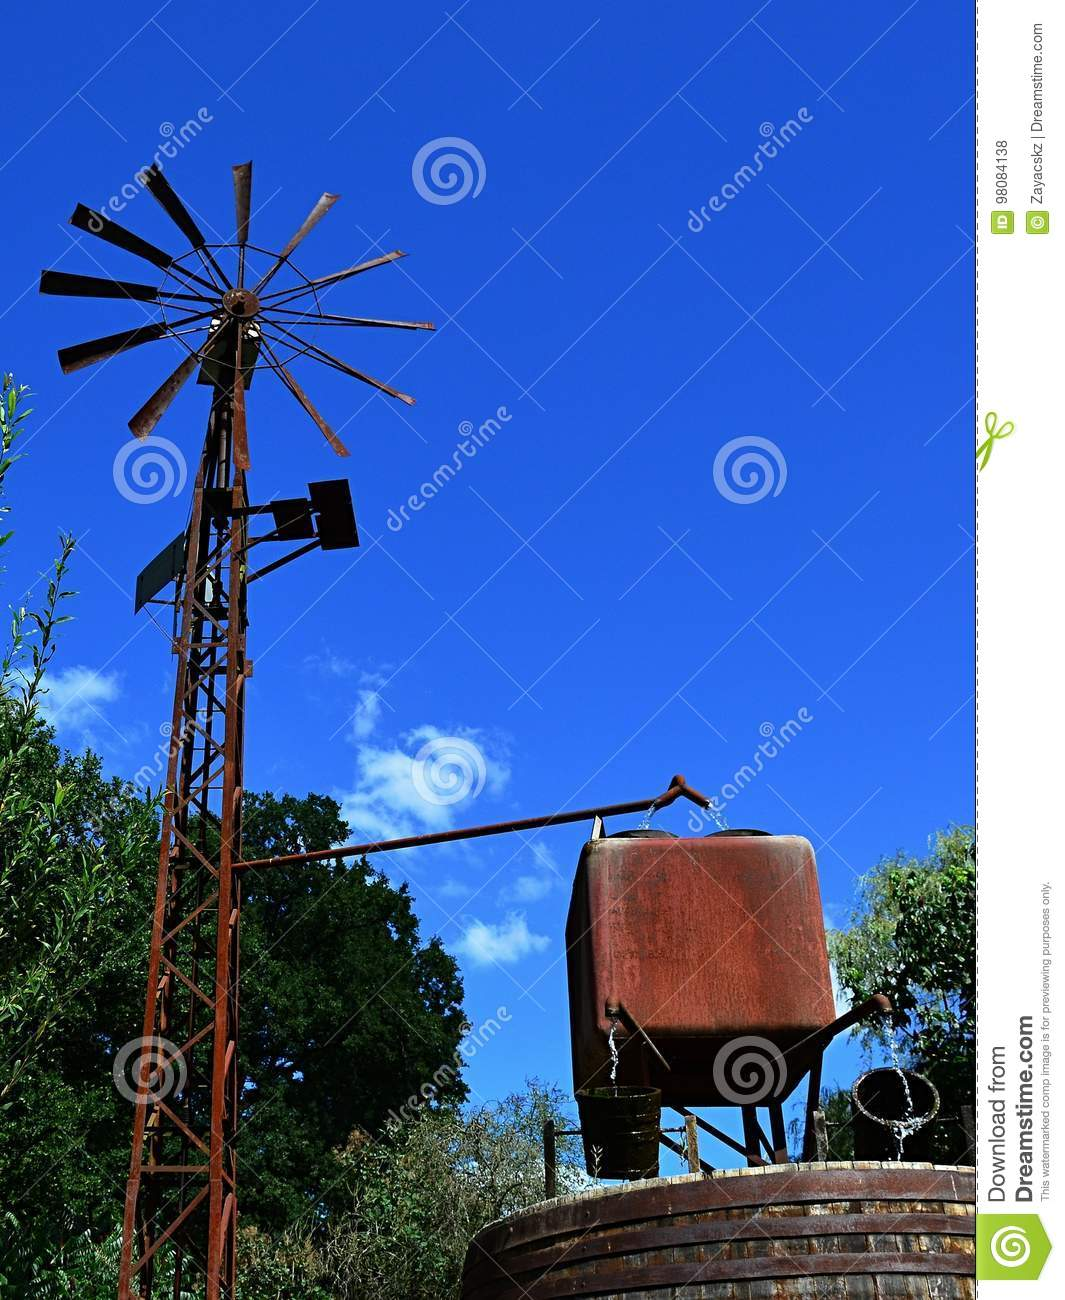 wind powered water pump with rusty pipes rusty square water